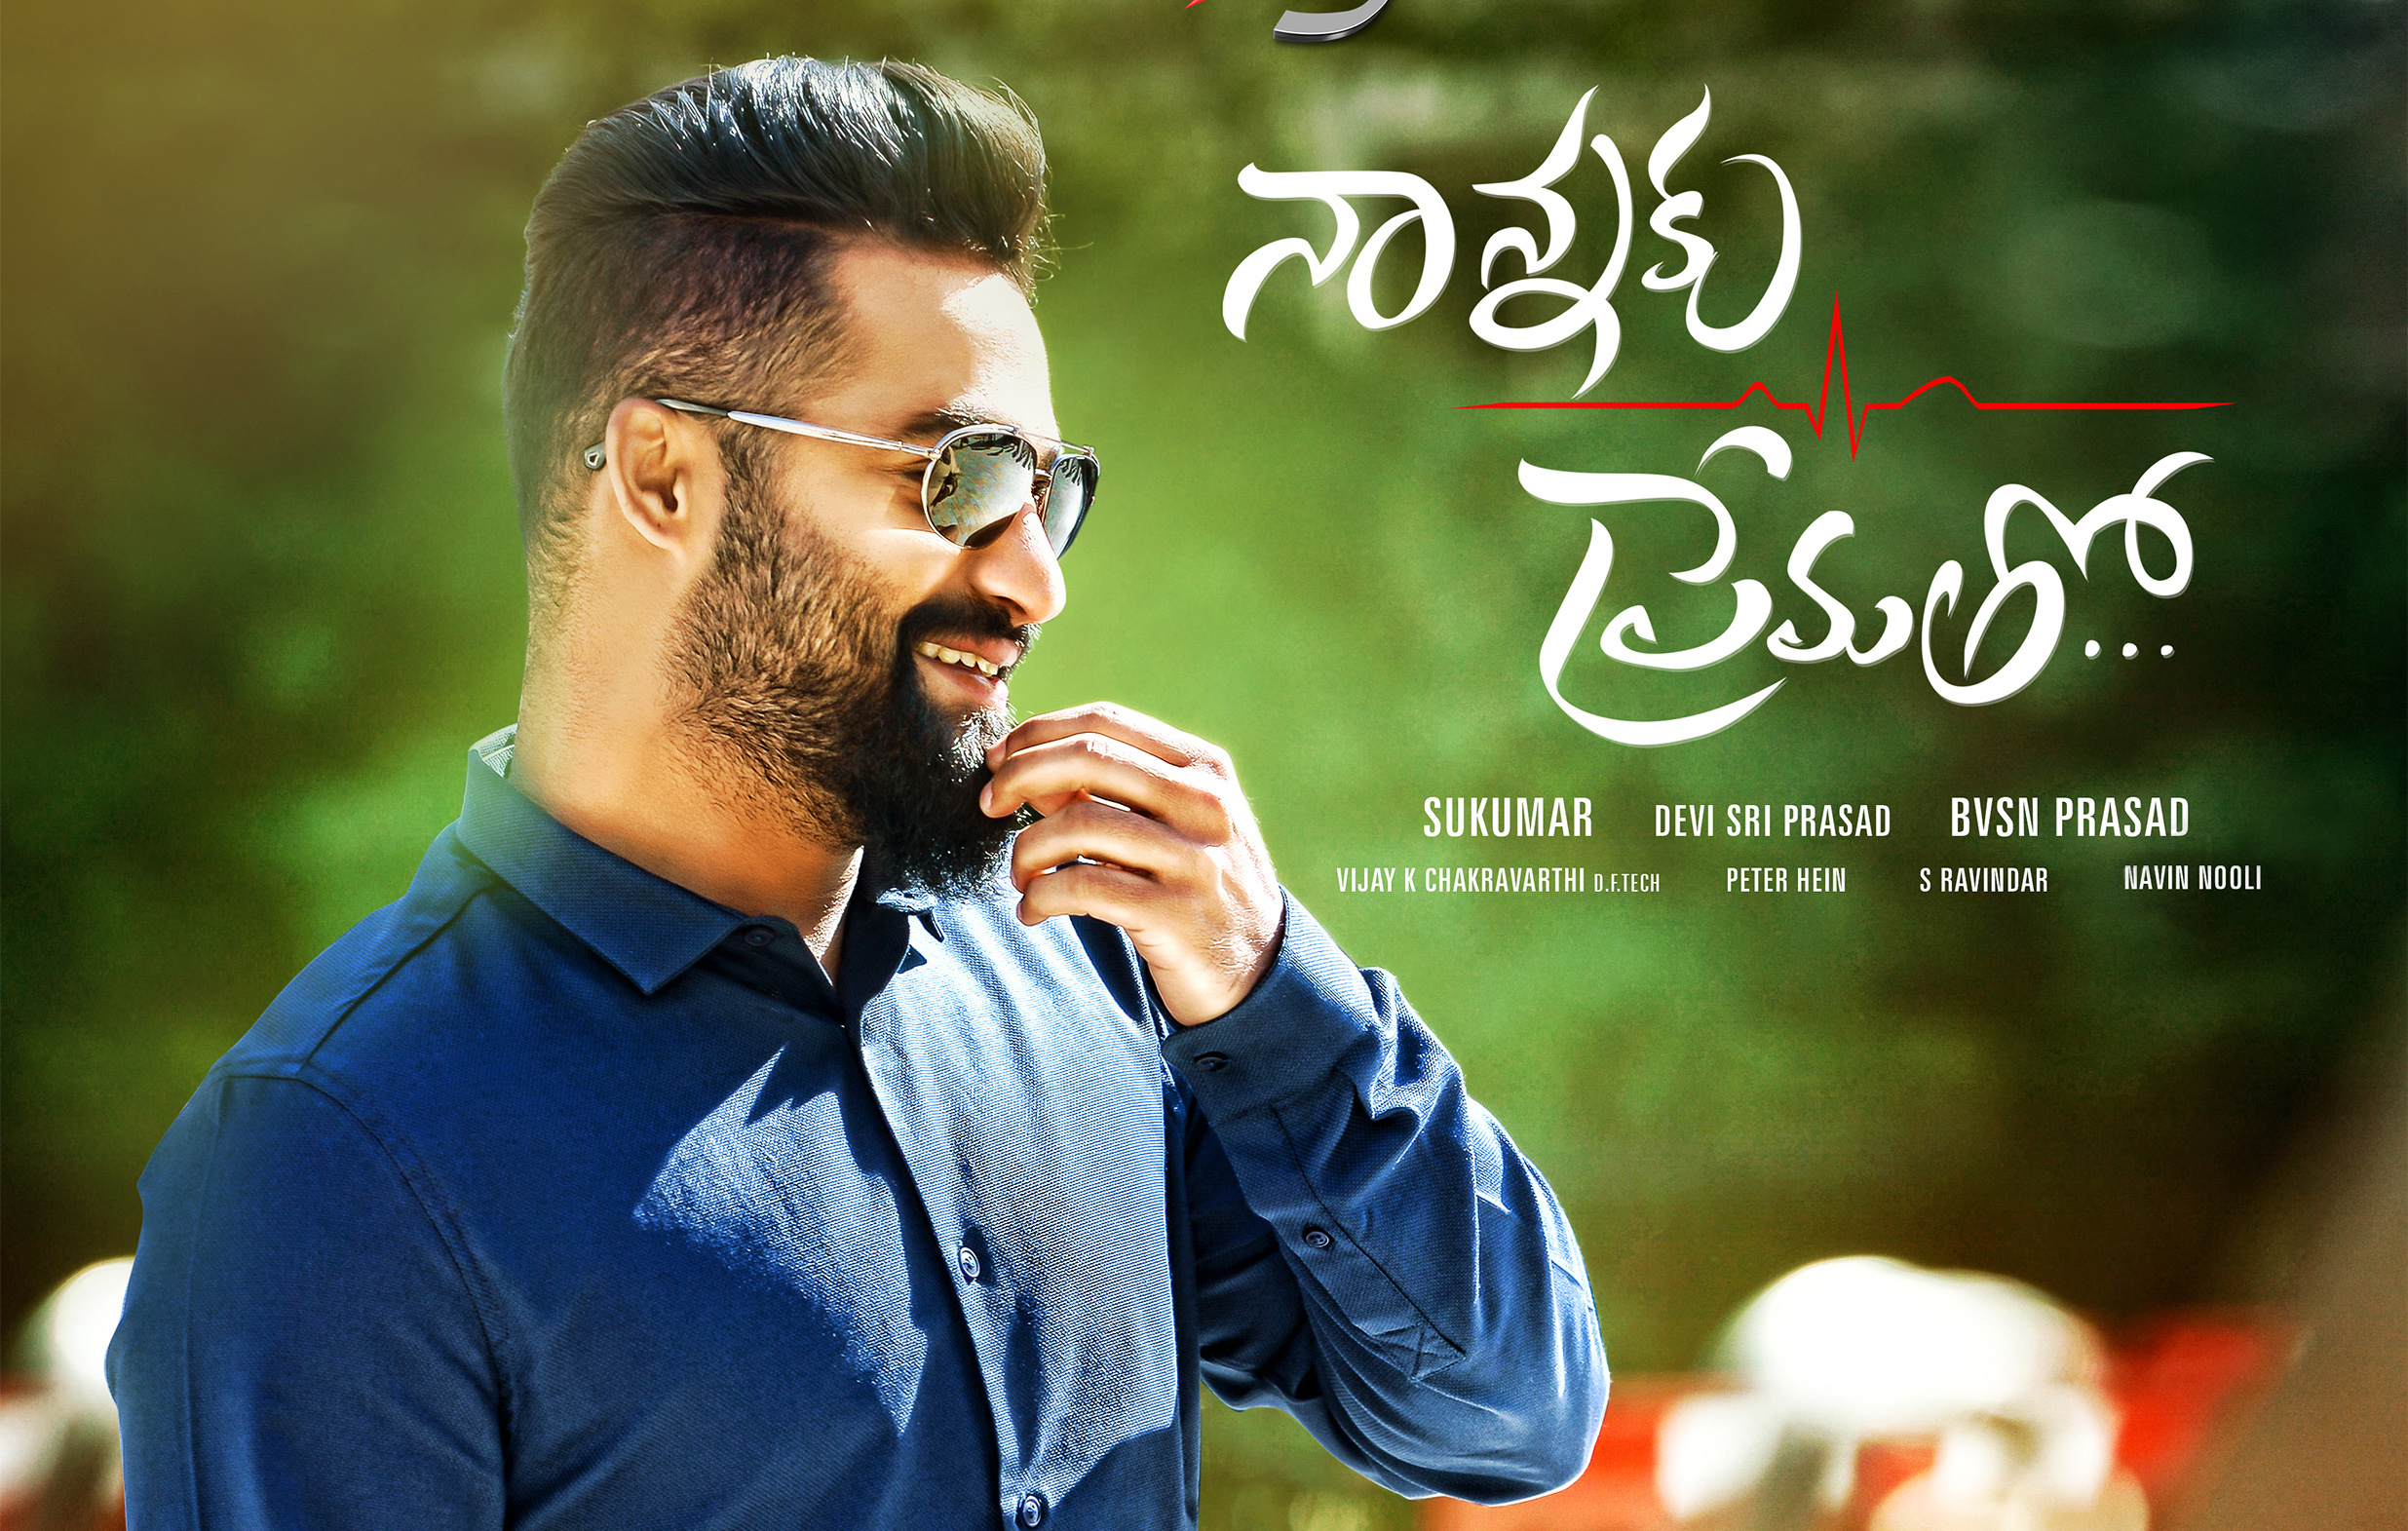 Telugu Movie Nannaku Prematho Review Rating Wiki Starcast Hit or Flop?